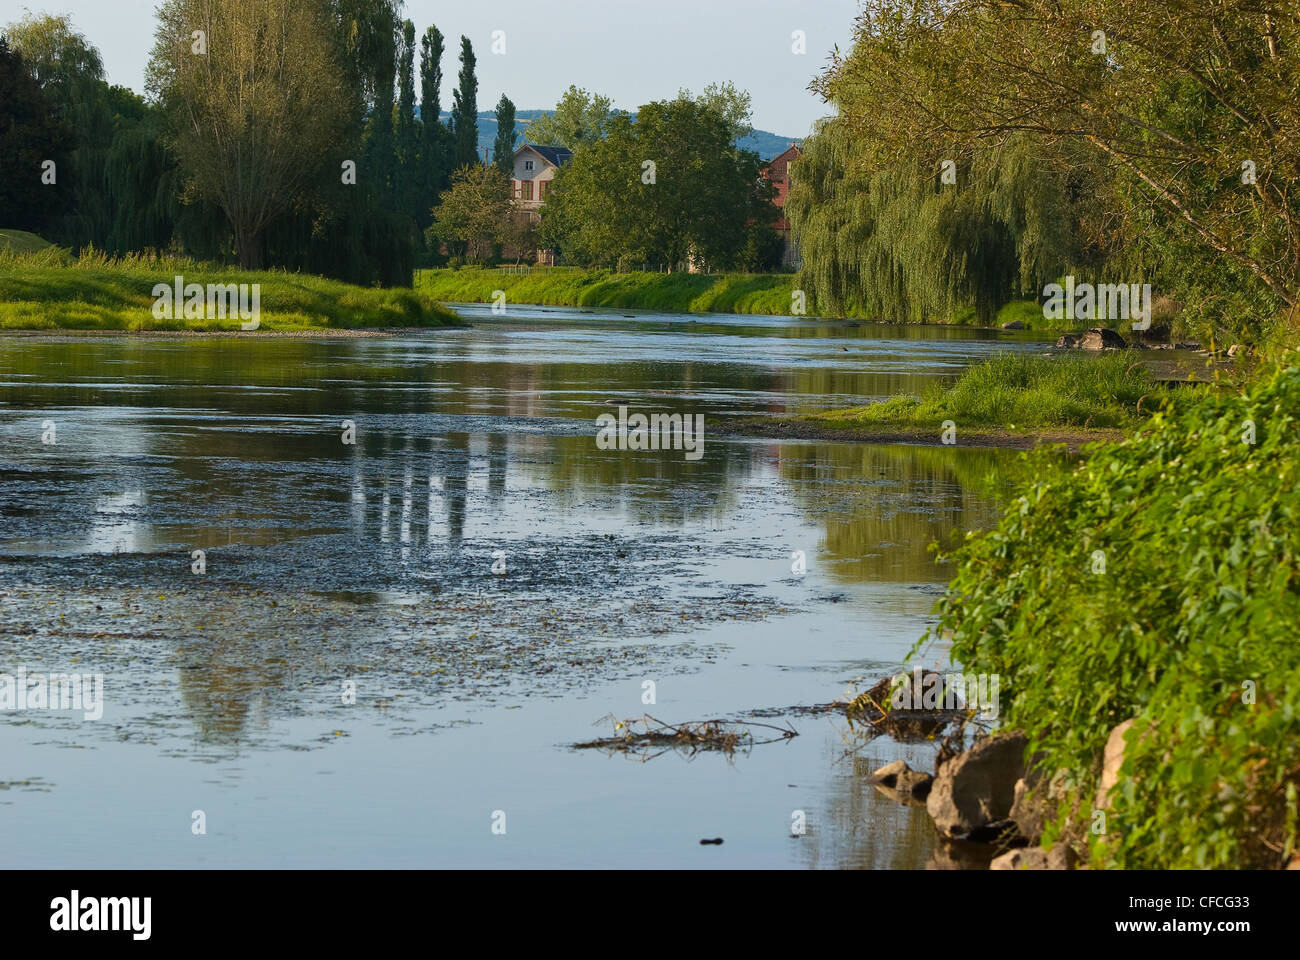 The Arroux is a river in central France, right tributary of the river Loire. - Stock Image